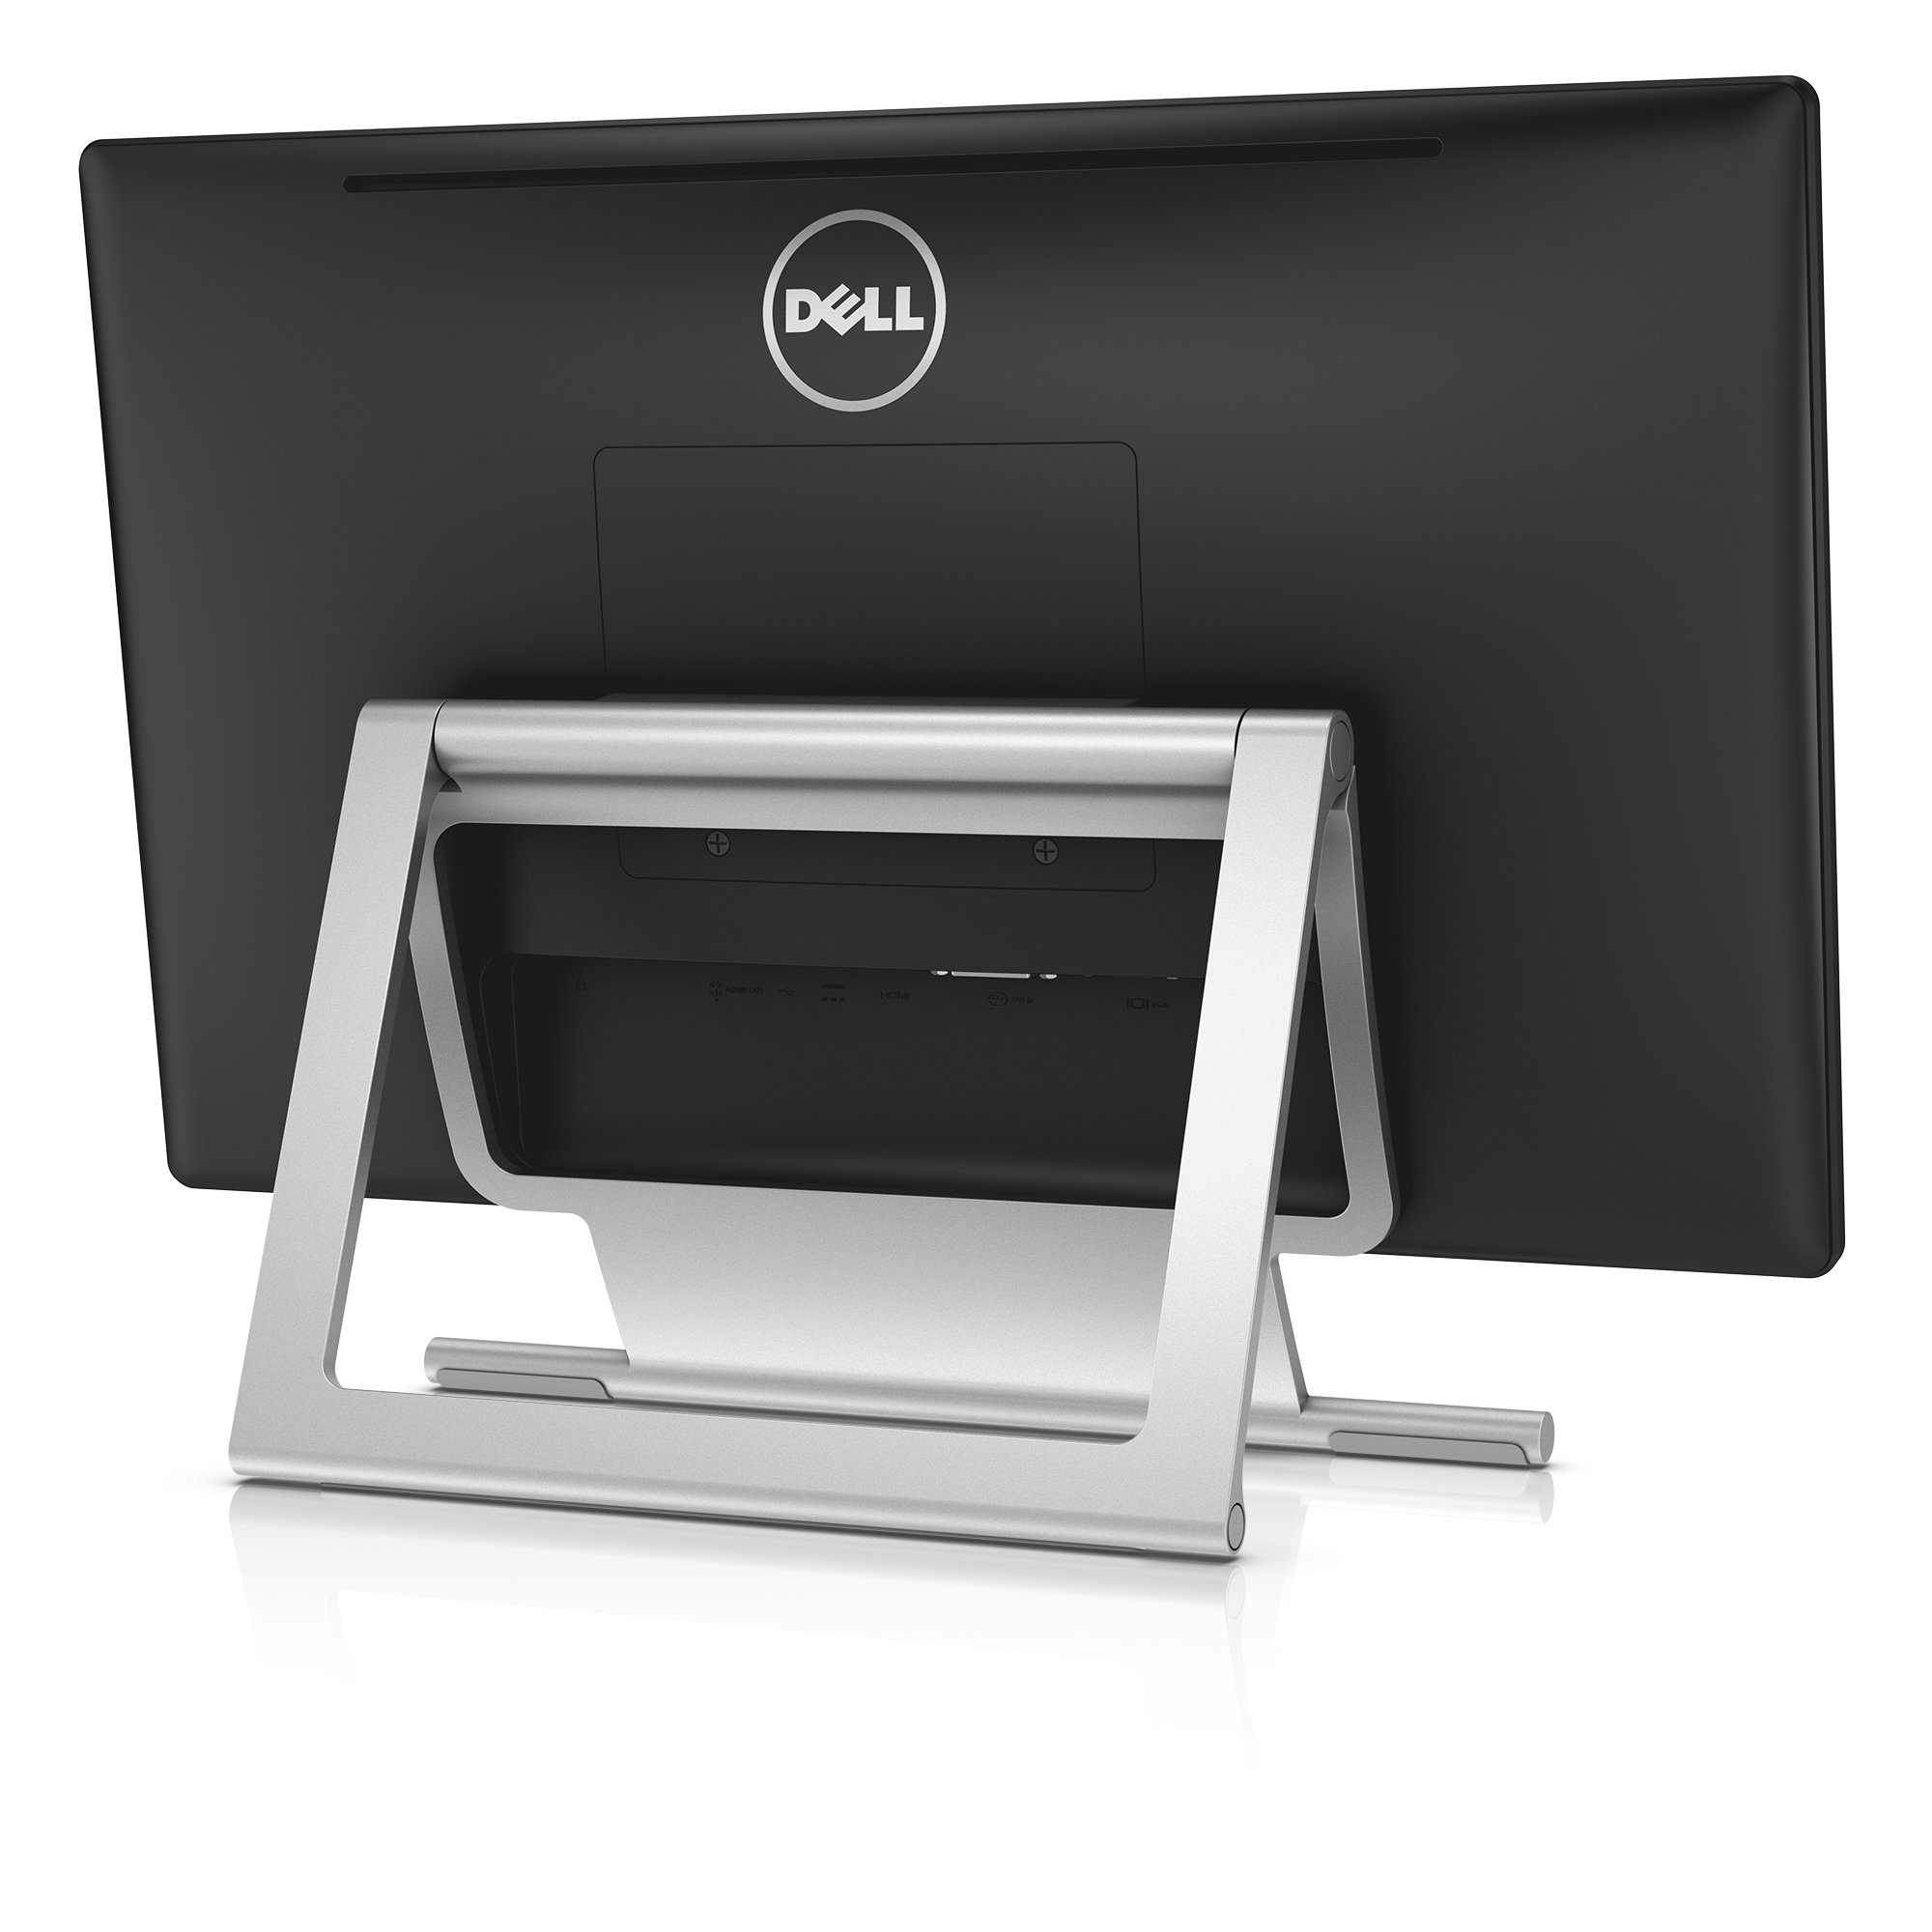 Dell S2240T 21.5-Inch Touch Screen LED-lit Monitor by Dell (Image #5)